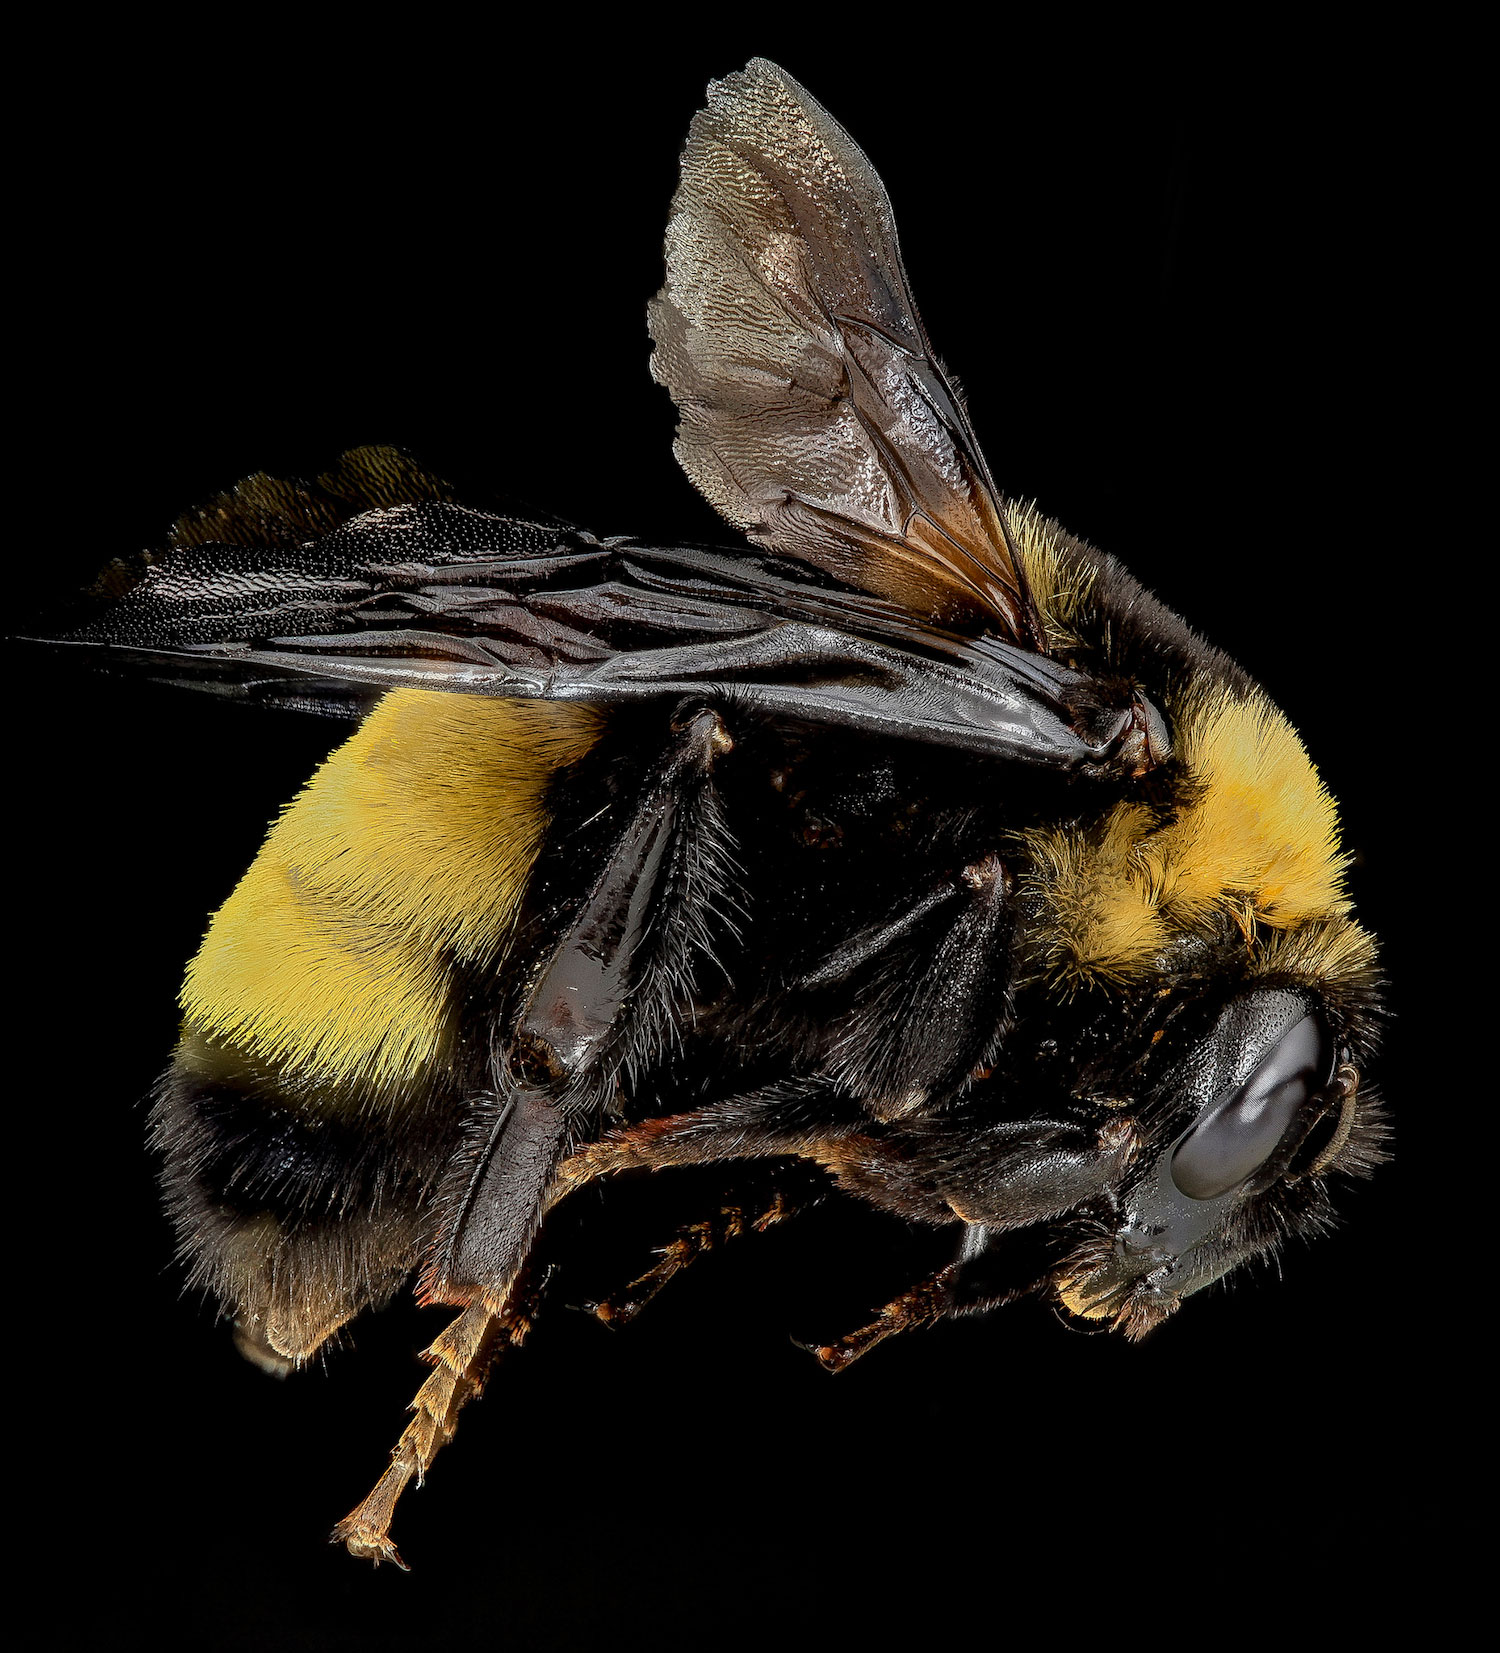 Types of Bees: Bumble Bee, Bombus auricomus